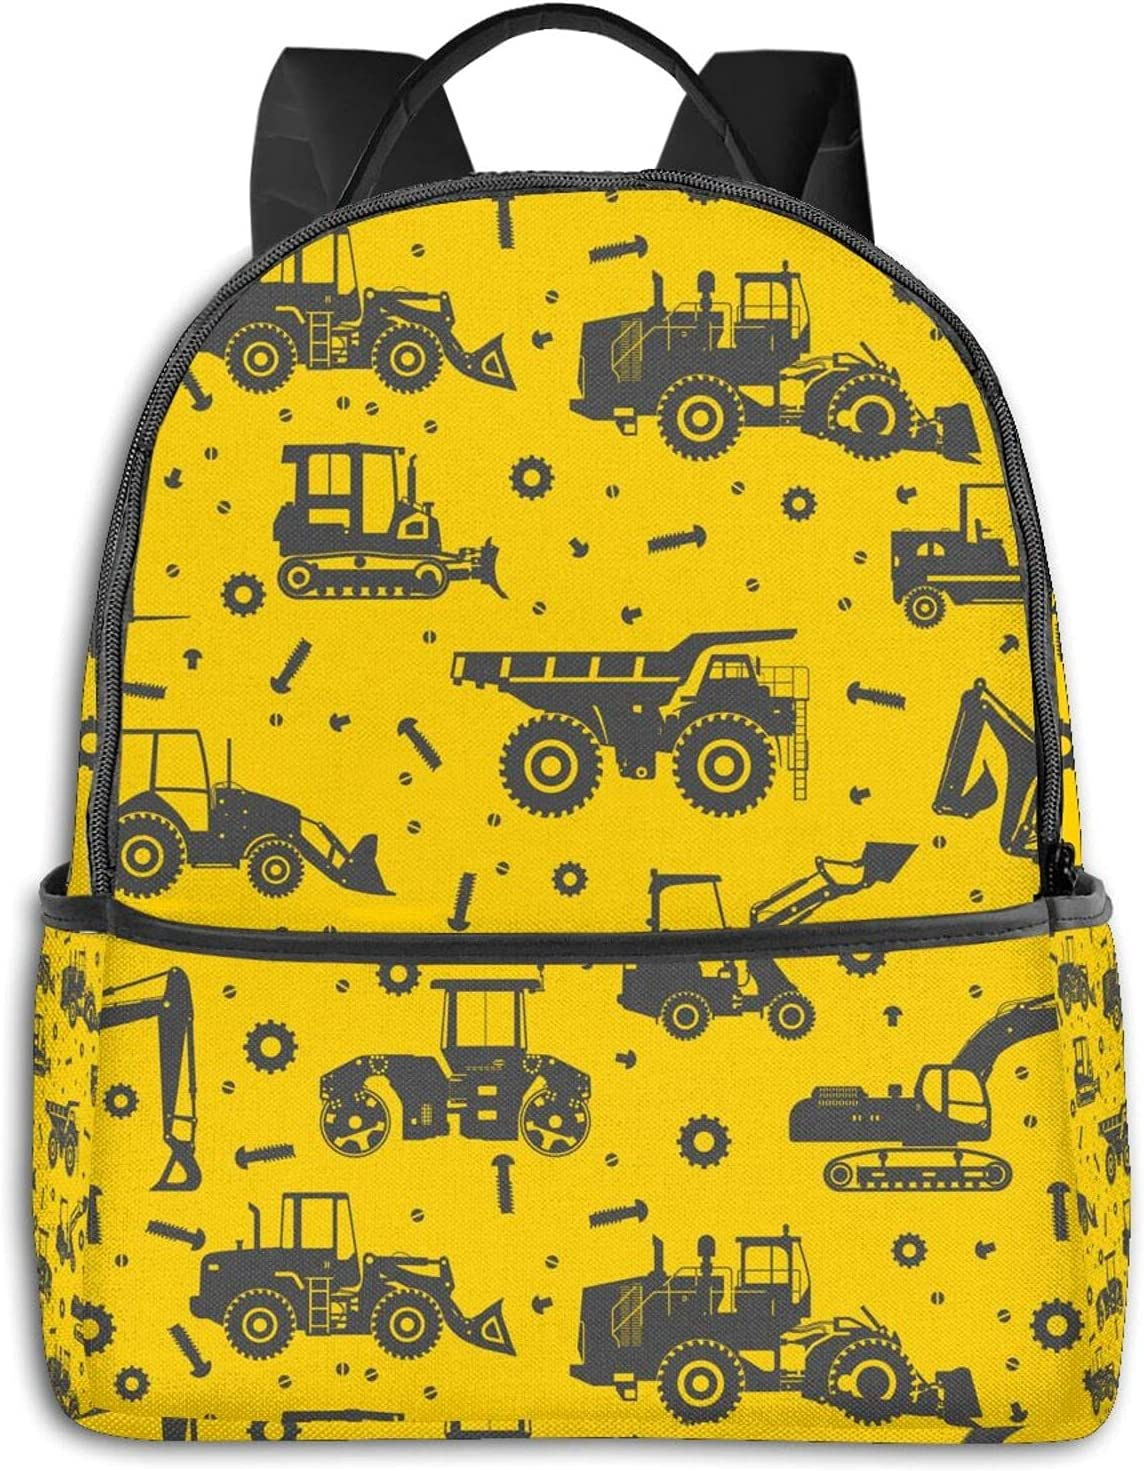 Construction Crew Vehicles Truck Backpack Men for Travel L store Women Max 75% OFF